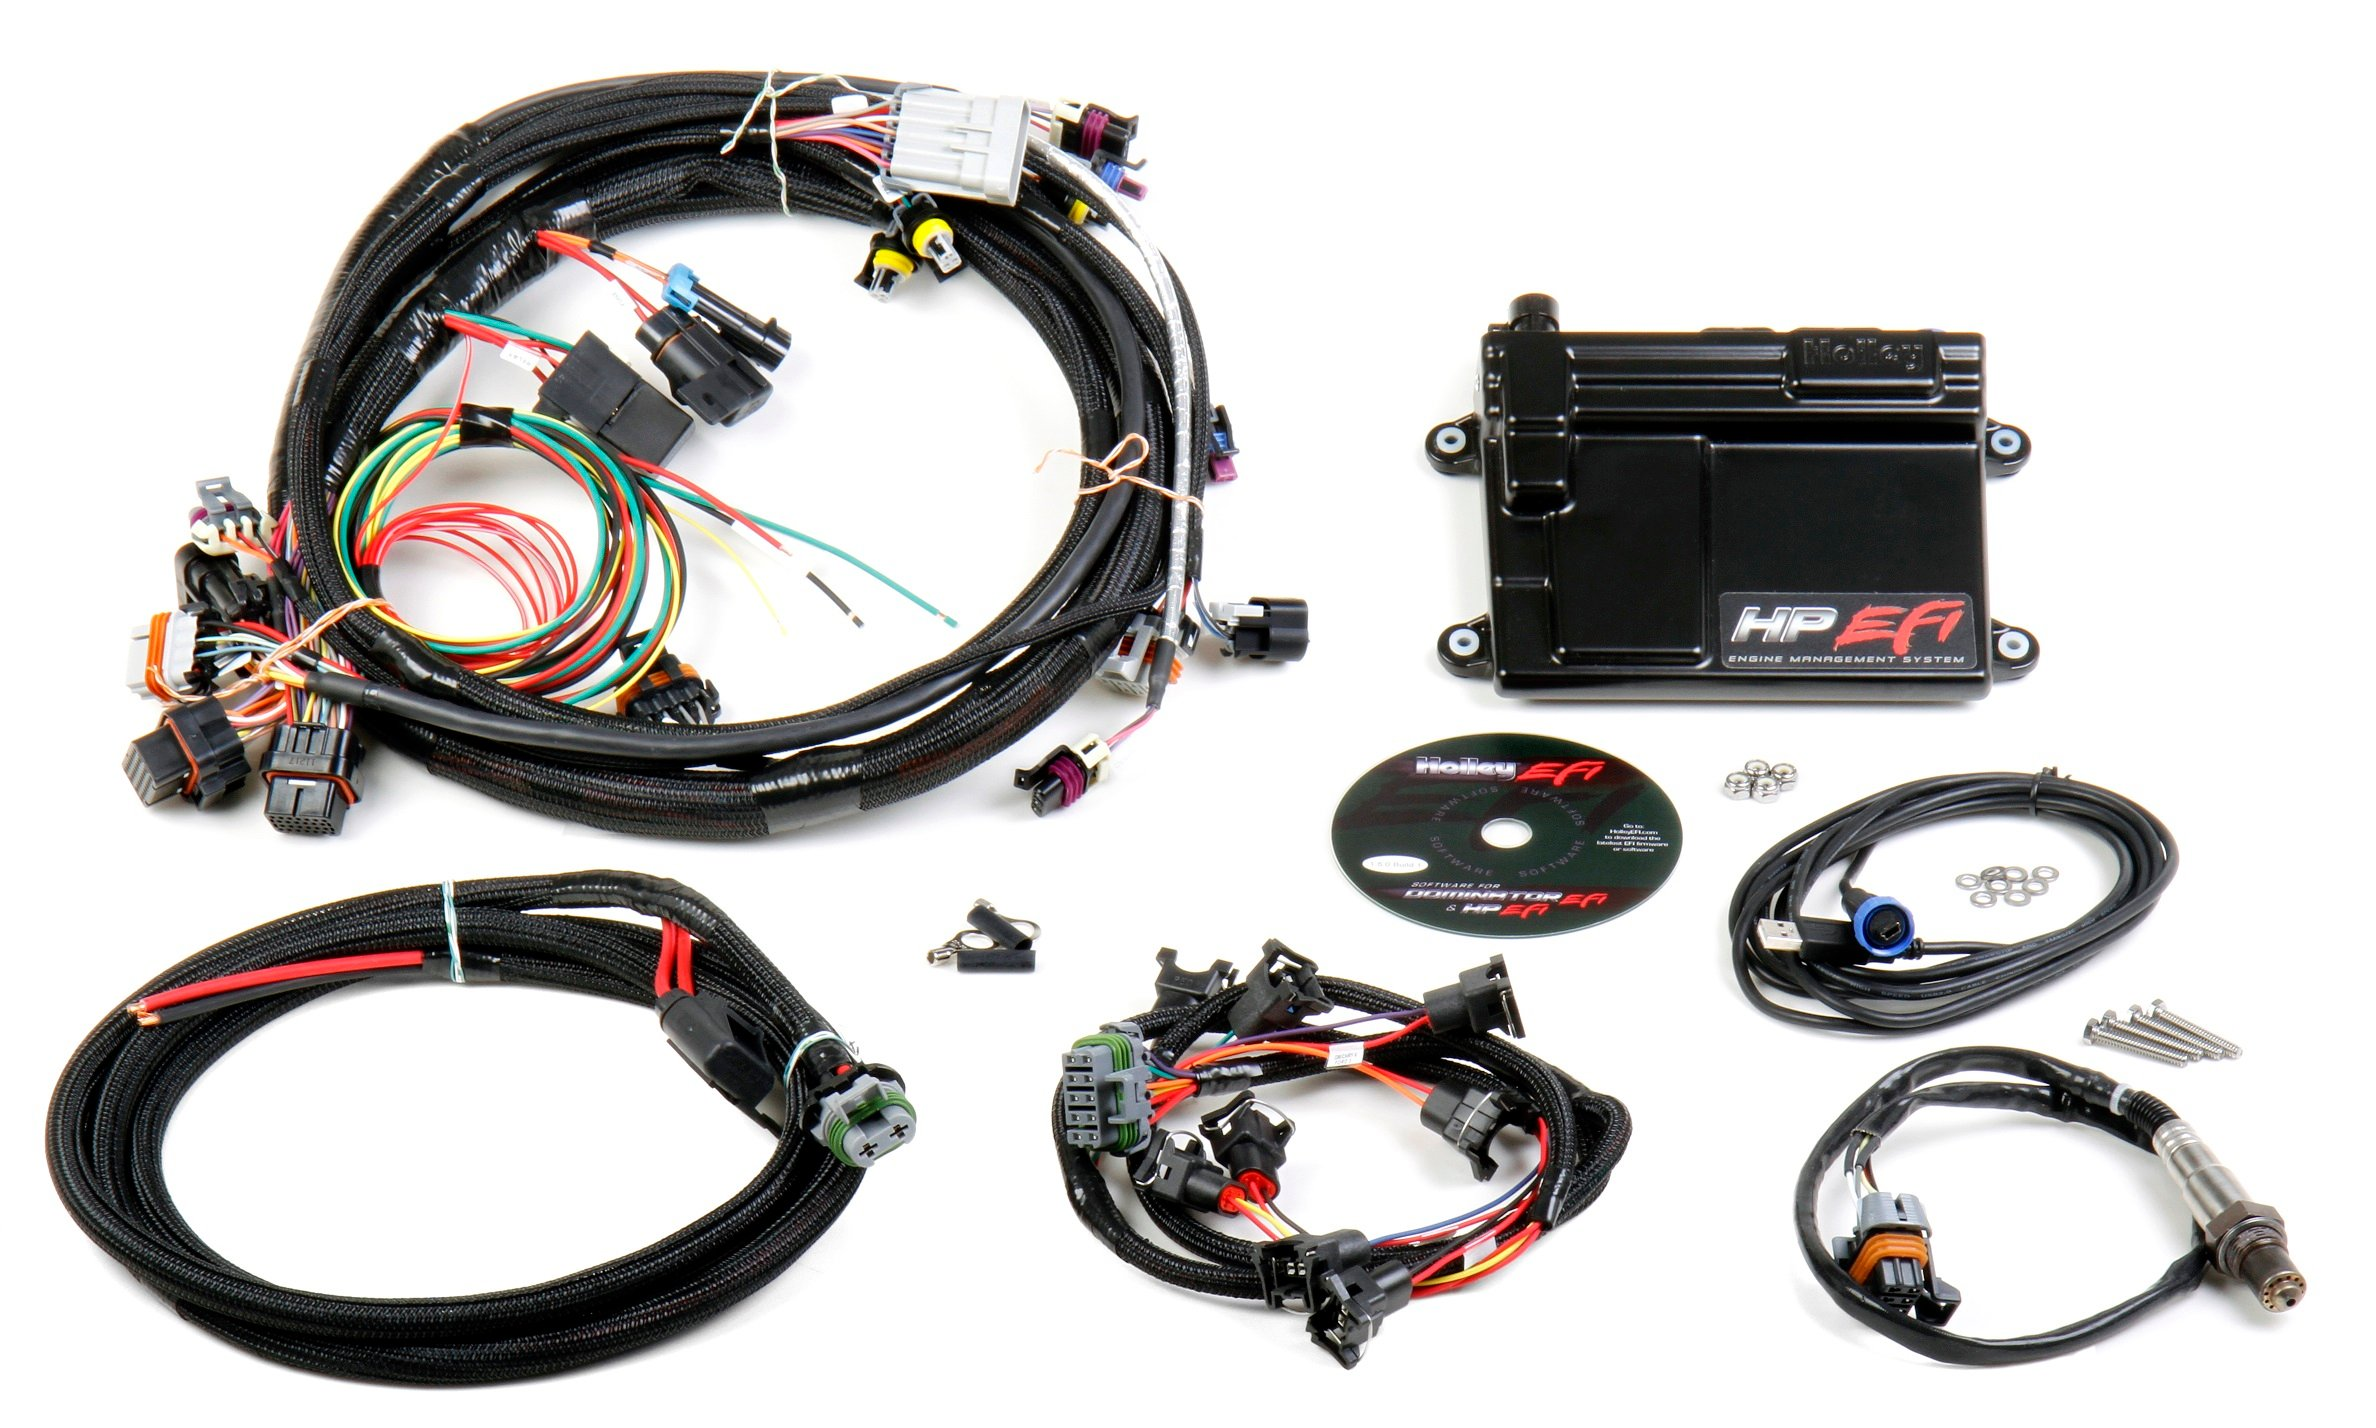 550 602 ls efi systems holley performance products 5 3 stand alone wiring harness at alyssarenee.co